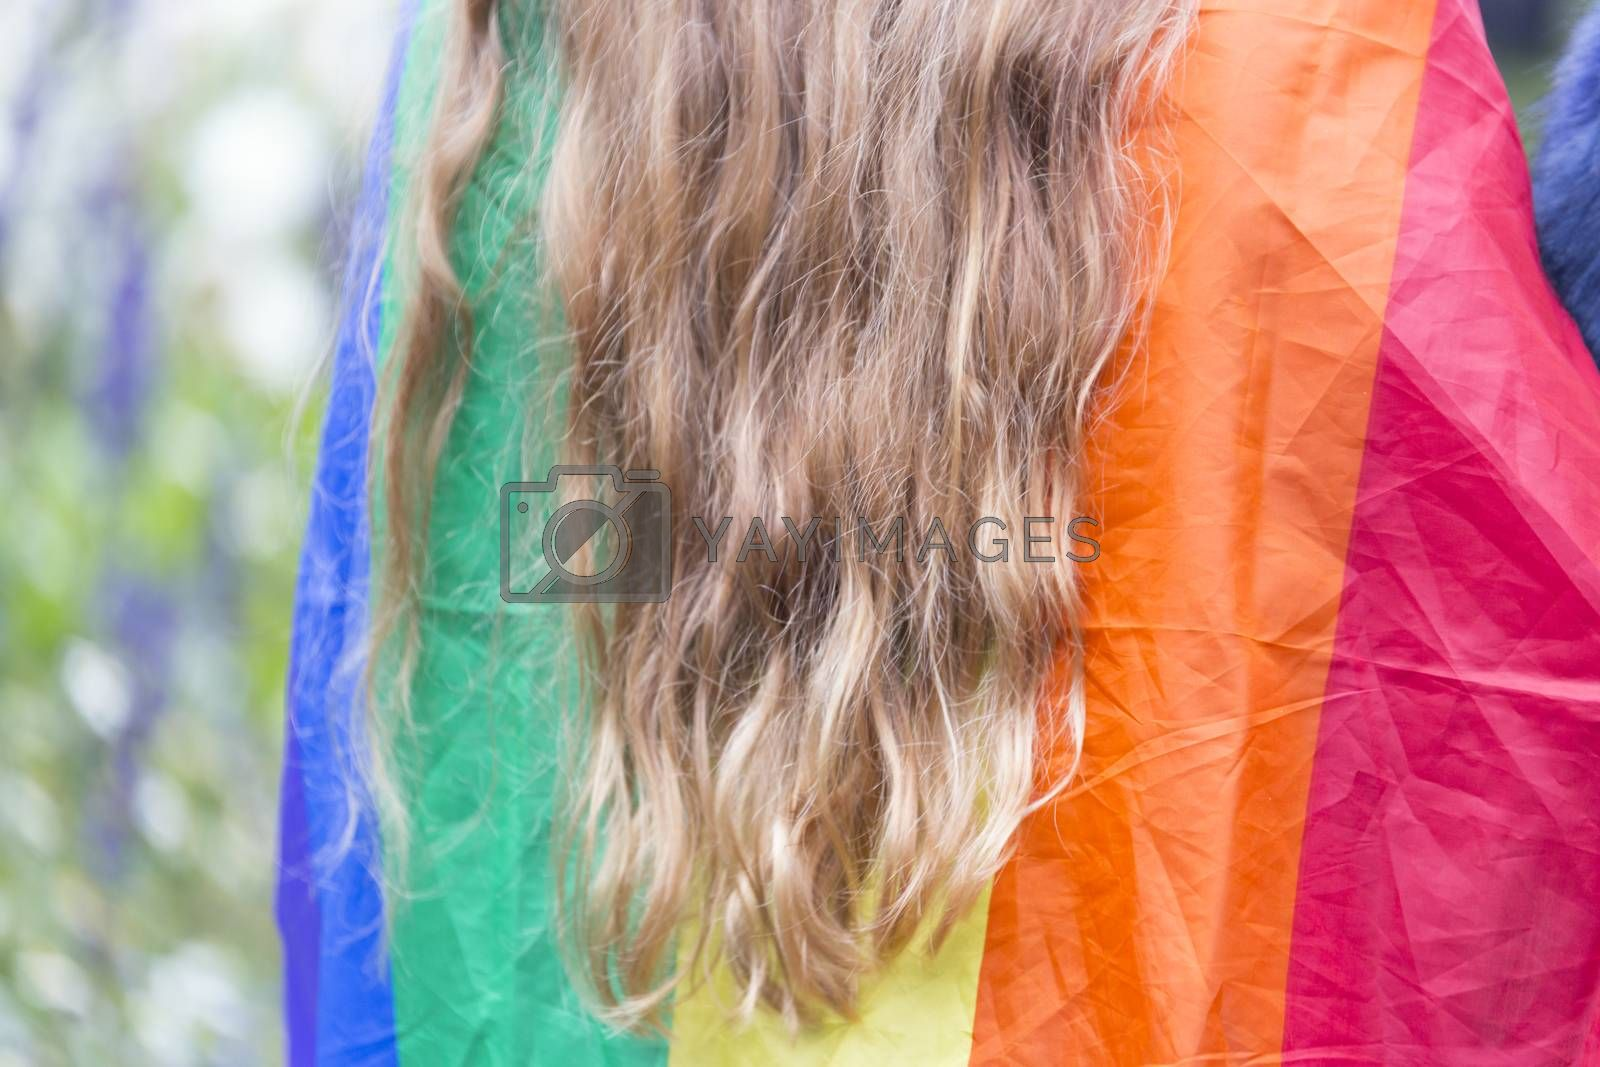 The  Rainbow Flag with long hair.